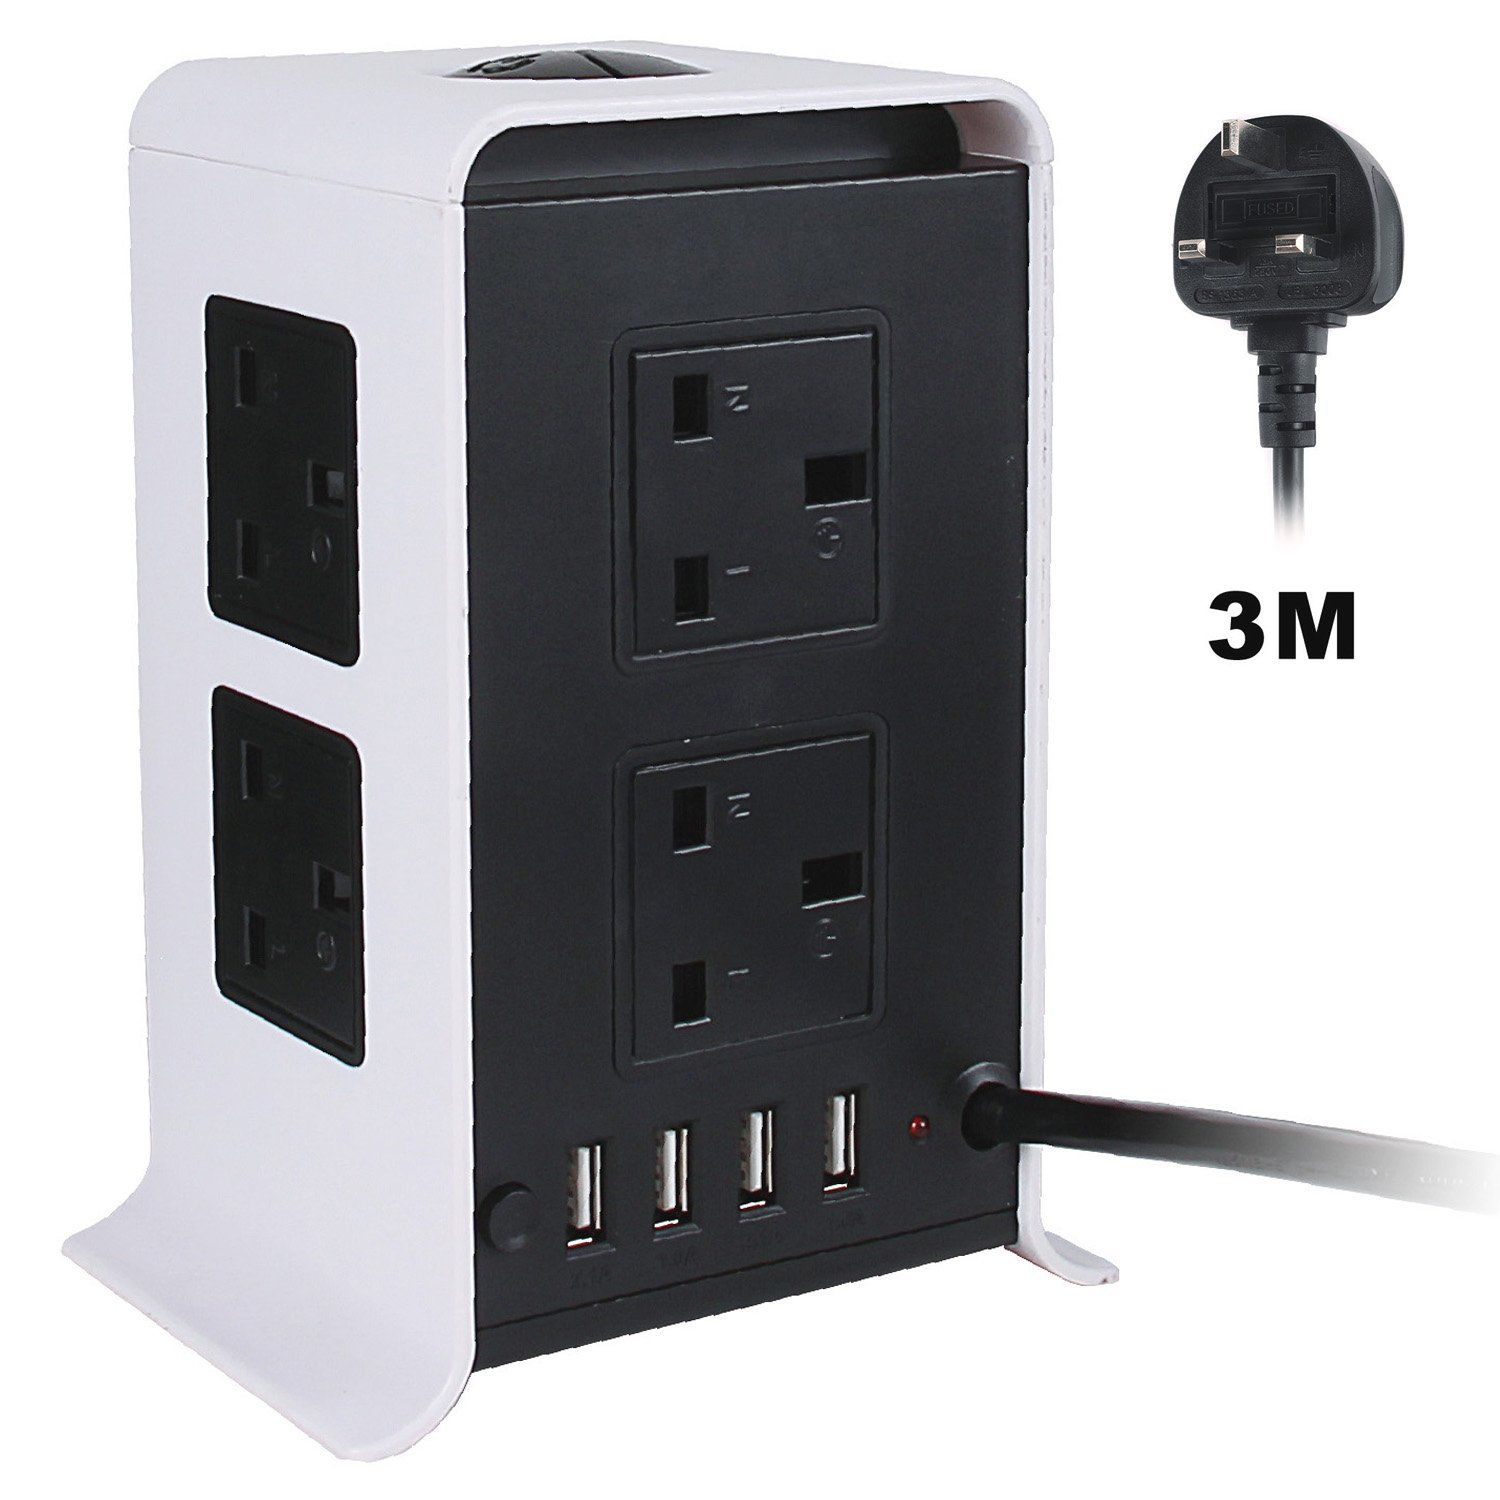 NPET Extension Leads 3M/9.8ft Tower Power Strips Surge Protector Overload Protection with 8 Way Outlets 4 USB Ports for Home Office PengXuan E-commerce Co. Ltd